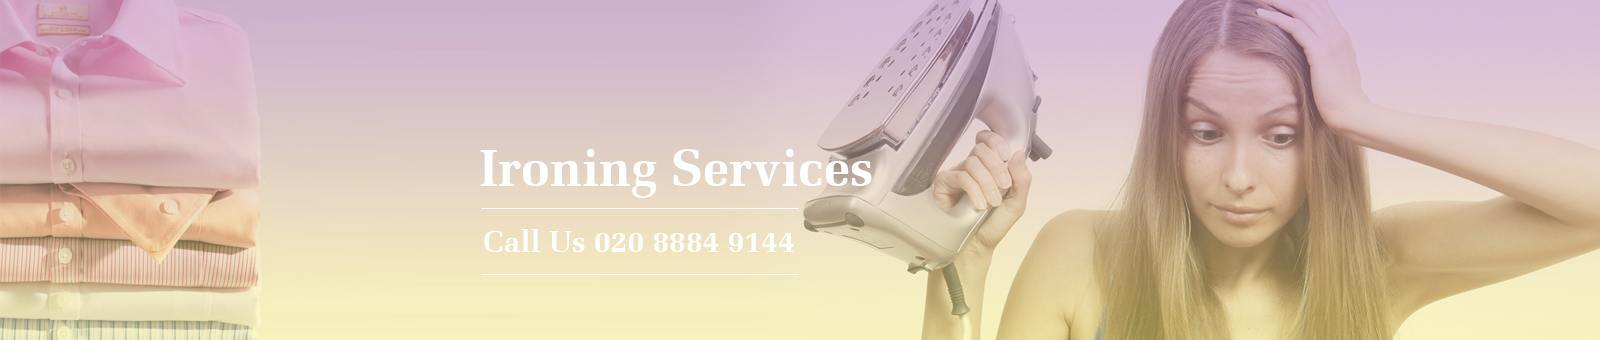 Ironing Services Slide